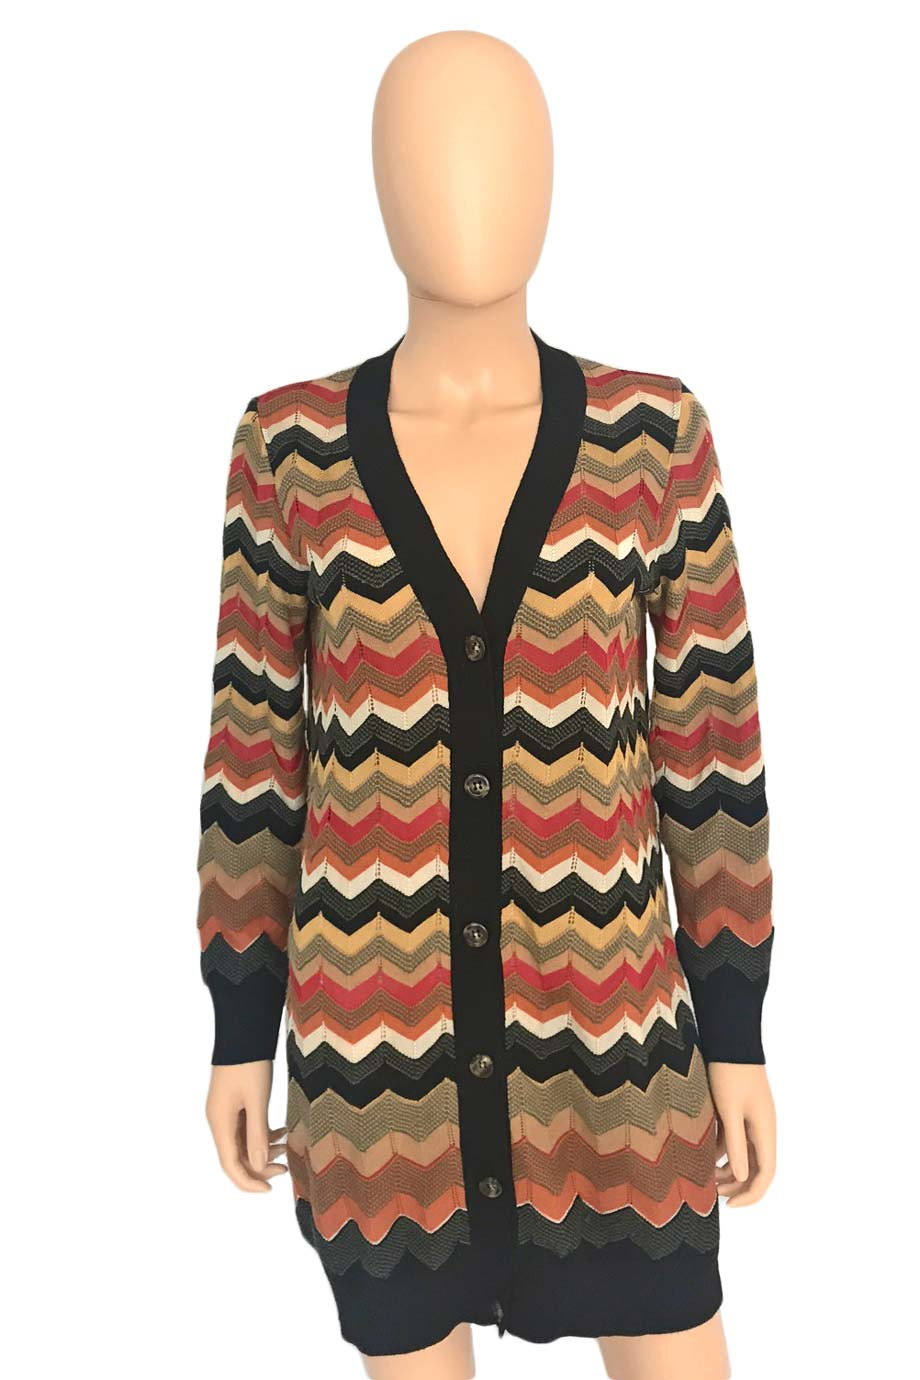 Missoni Multi-Color Zigzag Wool-Blend Cardigan Sweater / Sz 6-Style Therapy